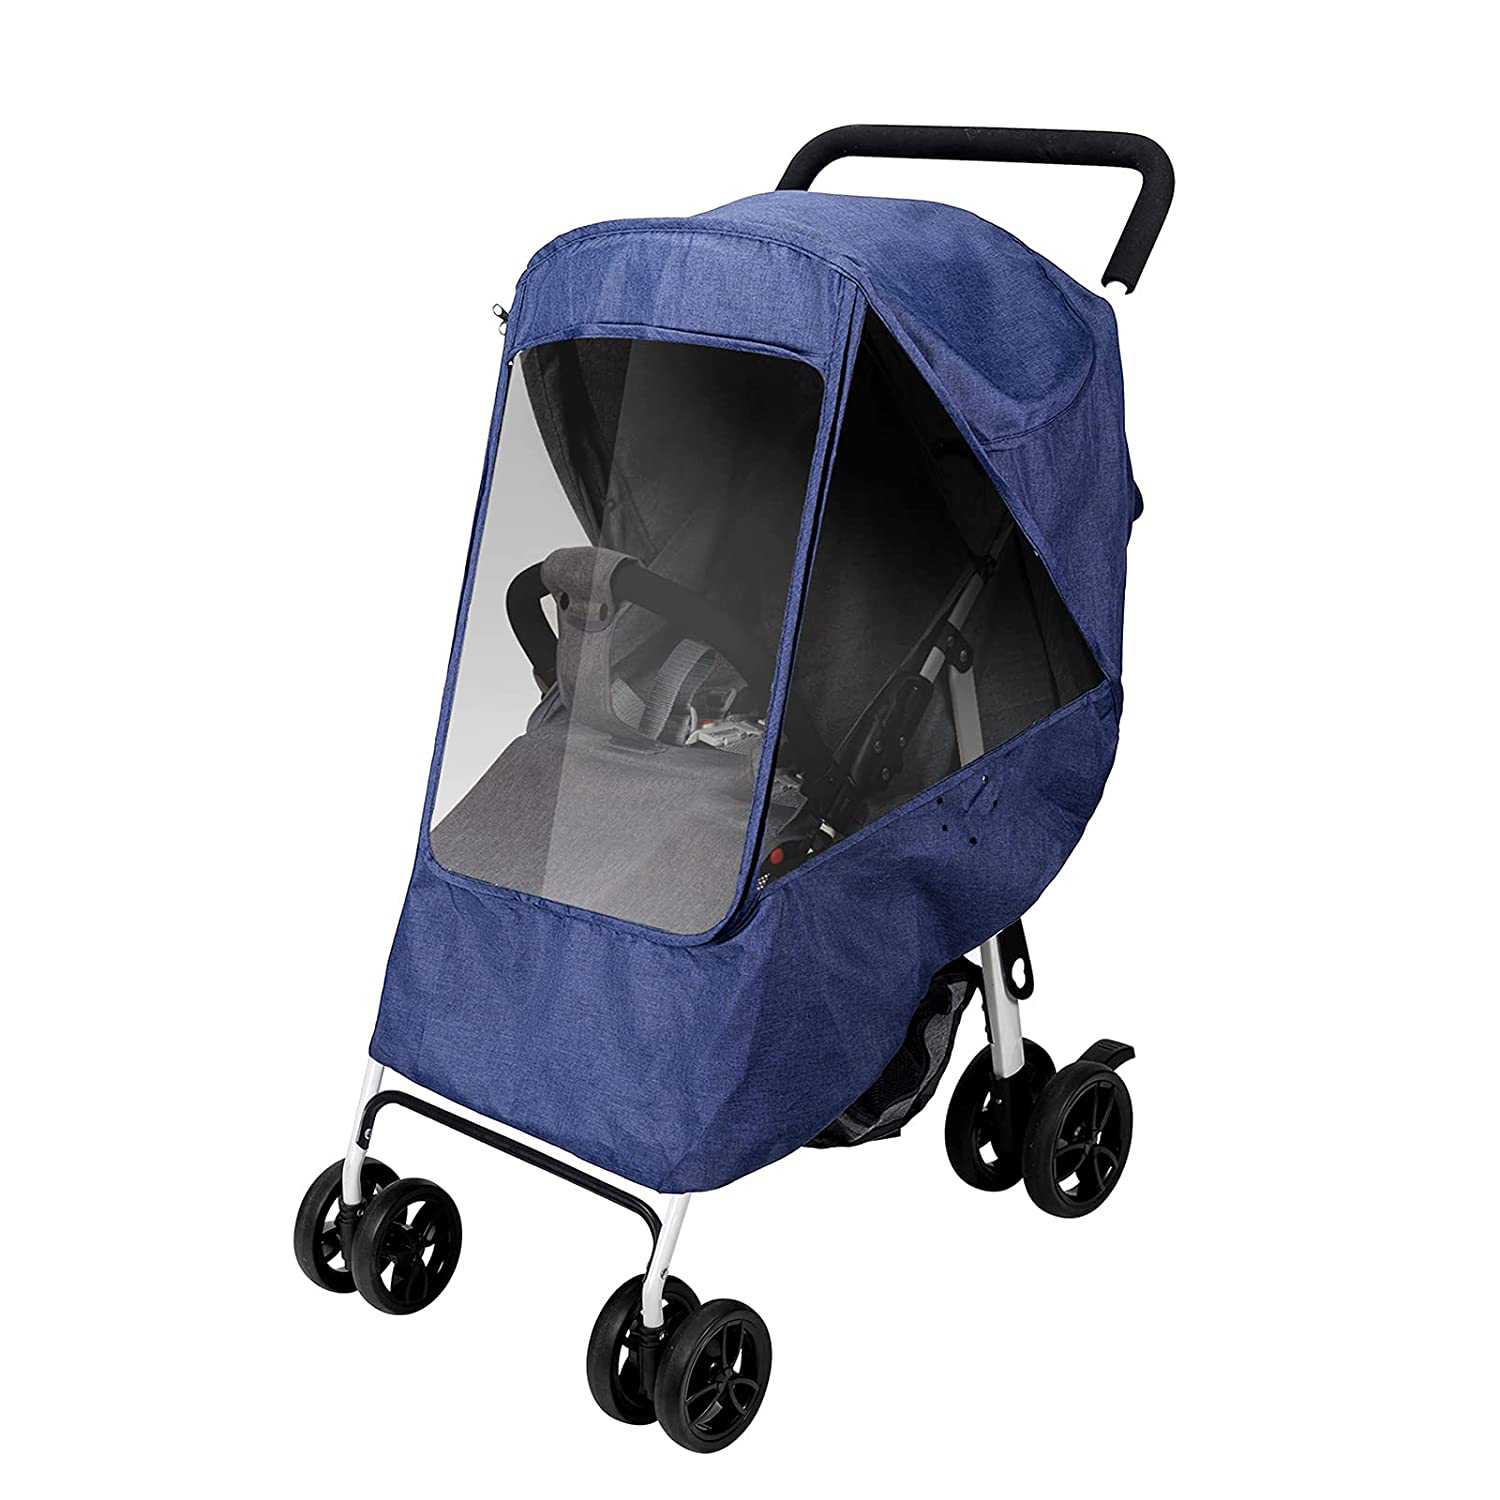 Gihims Universal Baby Stroller Accessories,Stroller Rain Cover & Mosquito Net,Waterproof,Windproof Protection,Travel Umbrella Cover for Most Strollers,Outdoor Use,Easy to Install and Remove(Blue)